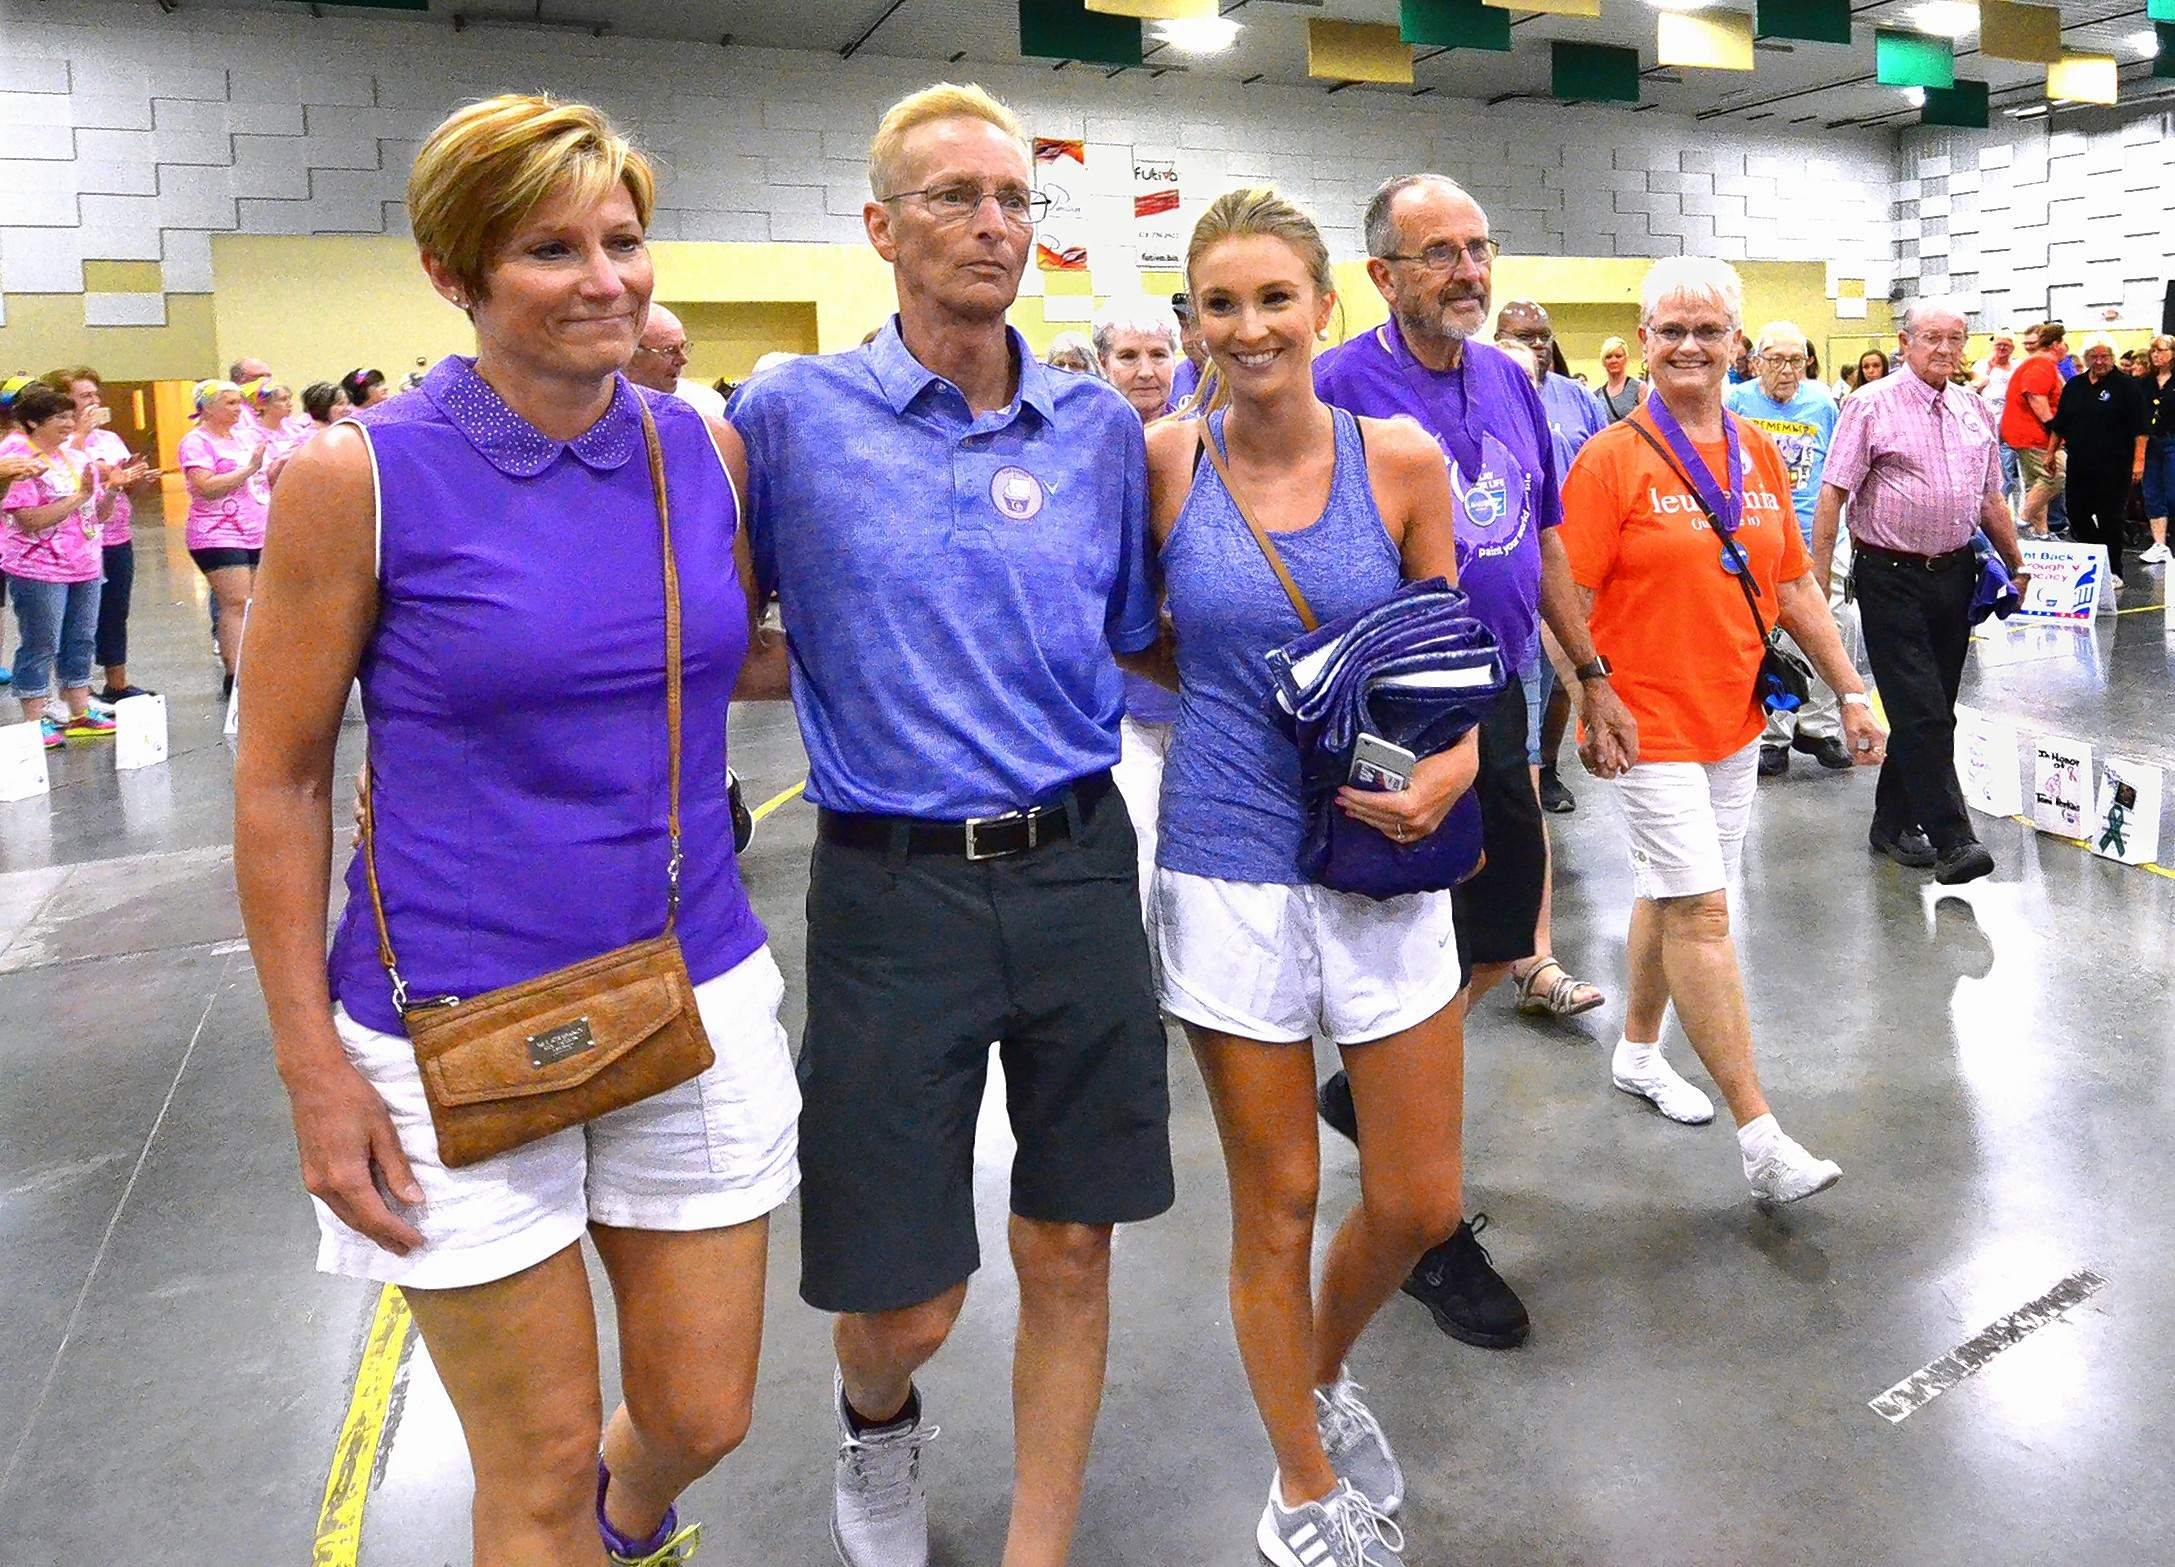 Traditionally, the second lap at American Cancer Society is made up of survivors and their caregivers. Among them participating in that lap in Marion Saturday evening was Marion resident Chuck Robertson, seen here arm-in-arm with his wife, Sarah, and daughter, Ashlyn.